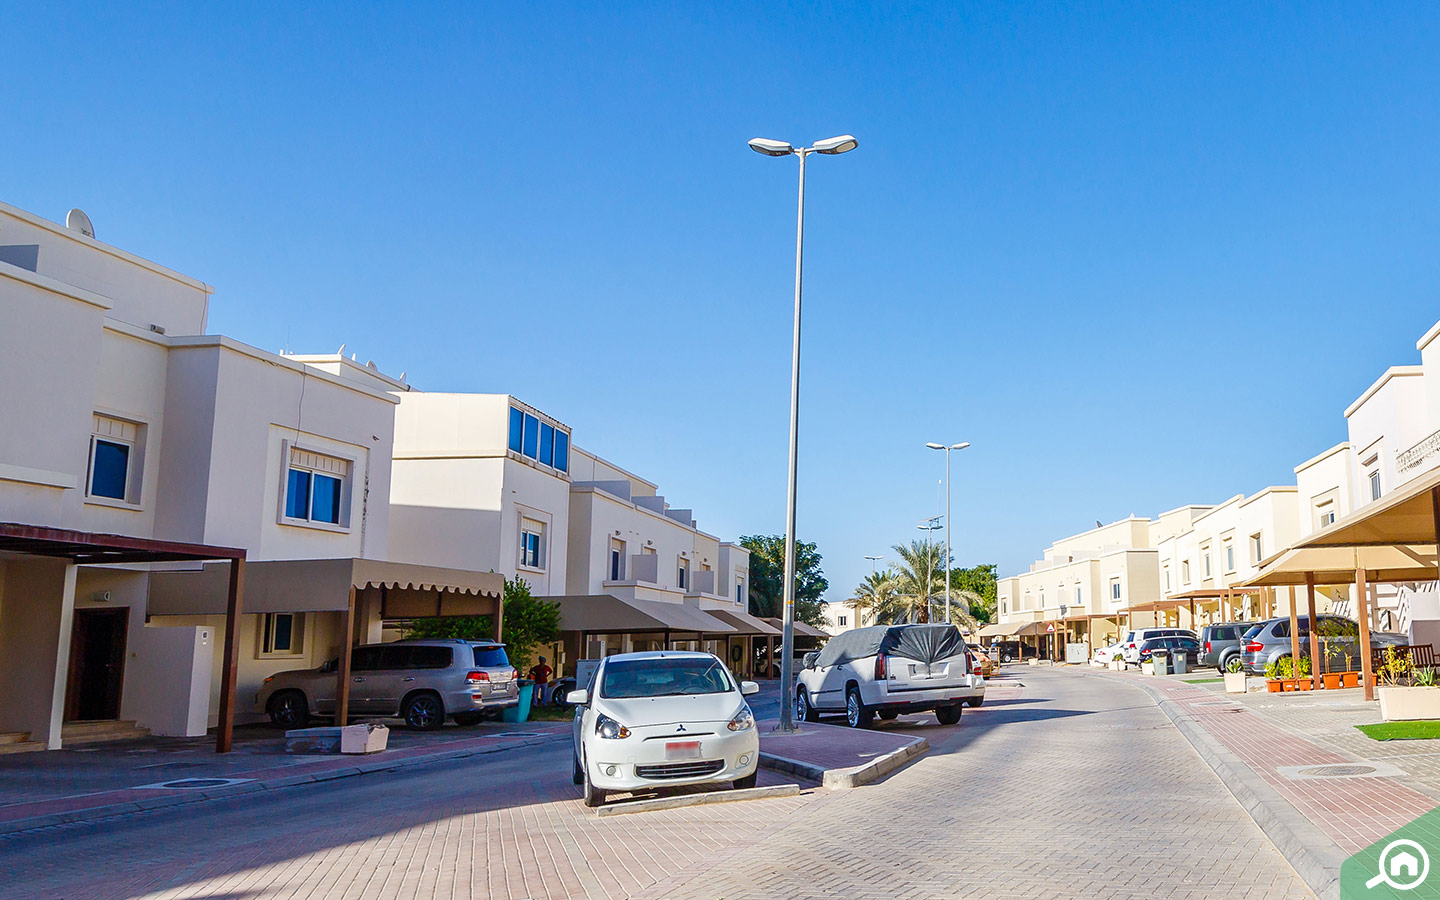 Parking in Al Reef Downtown